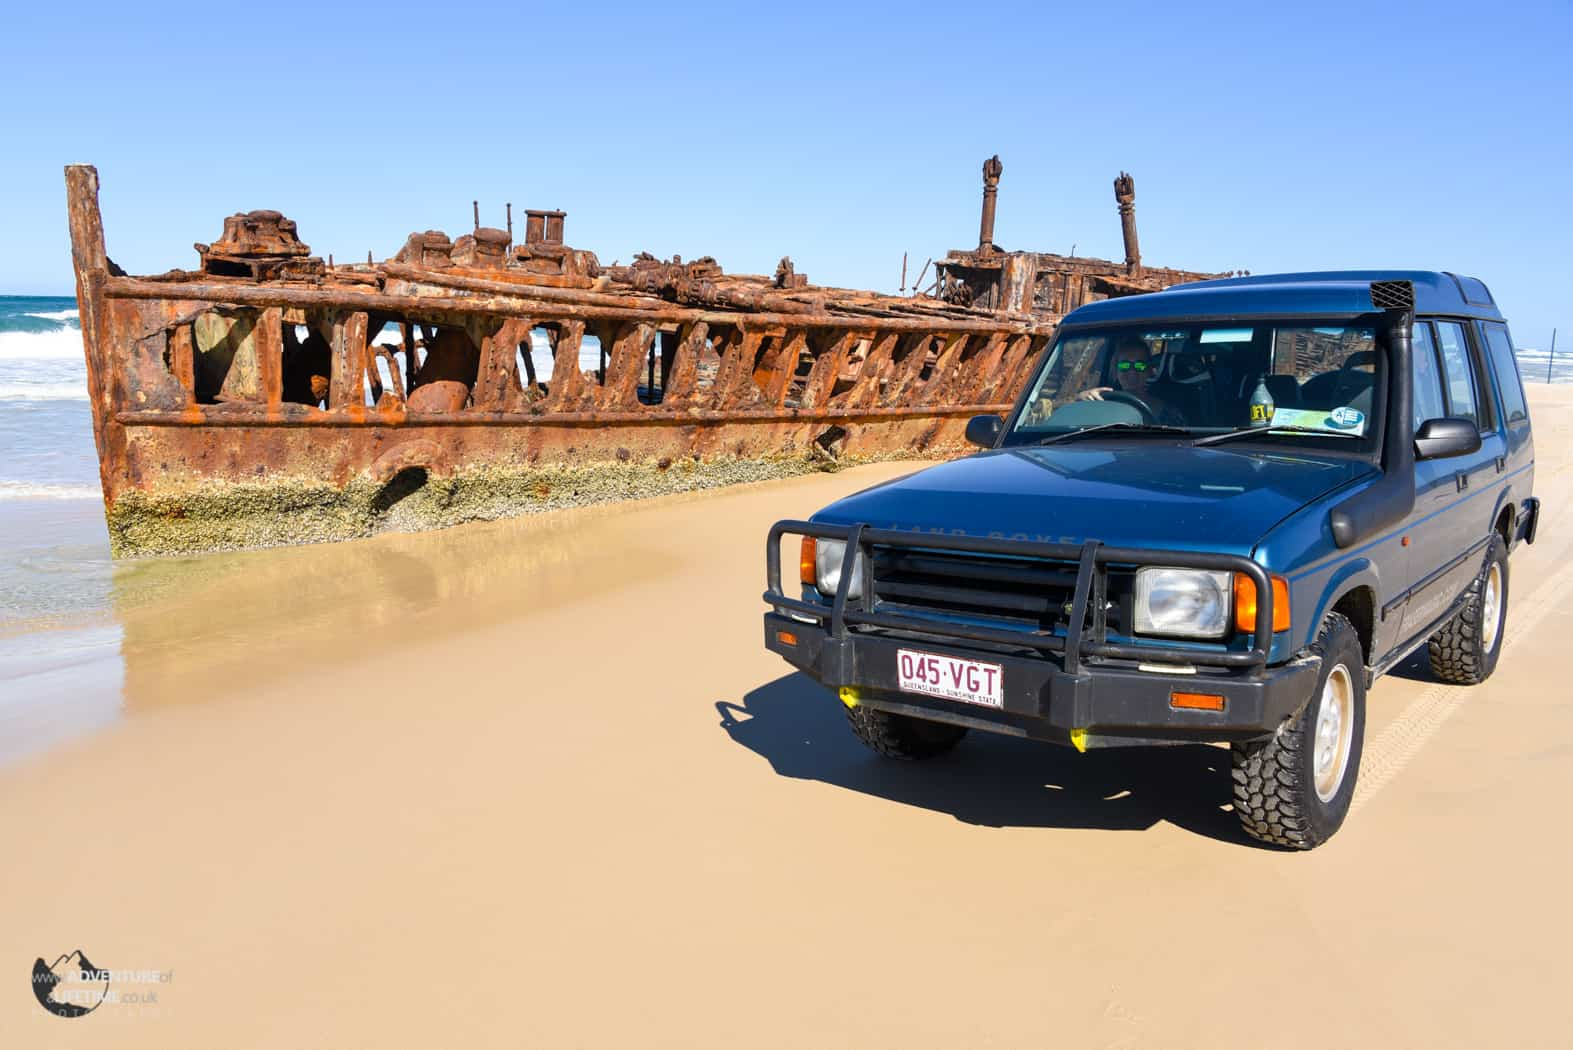 An old ship wreck and our Land Rover Discovery